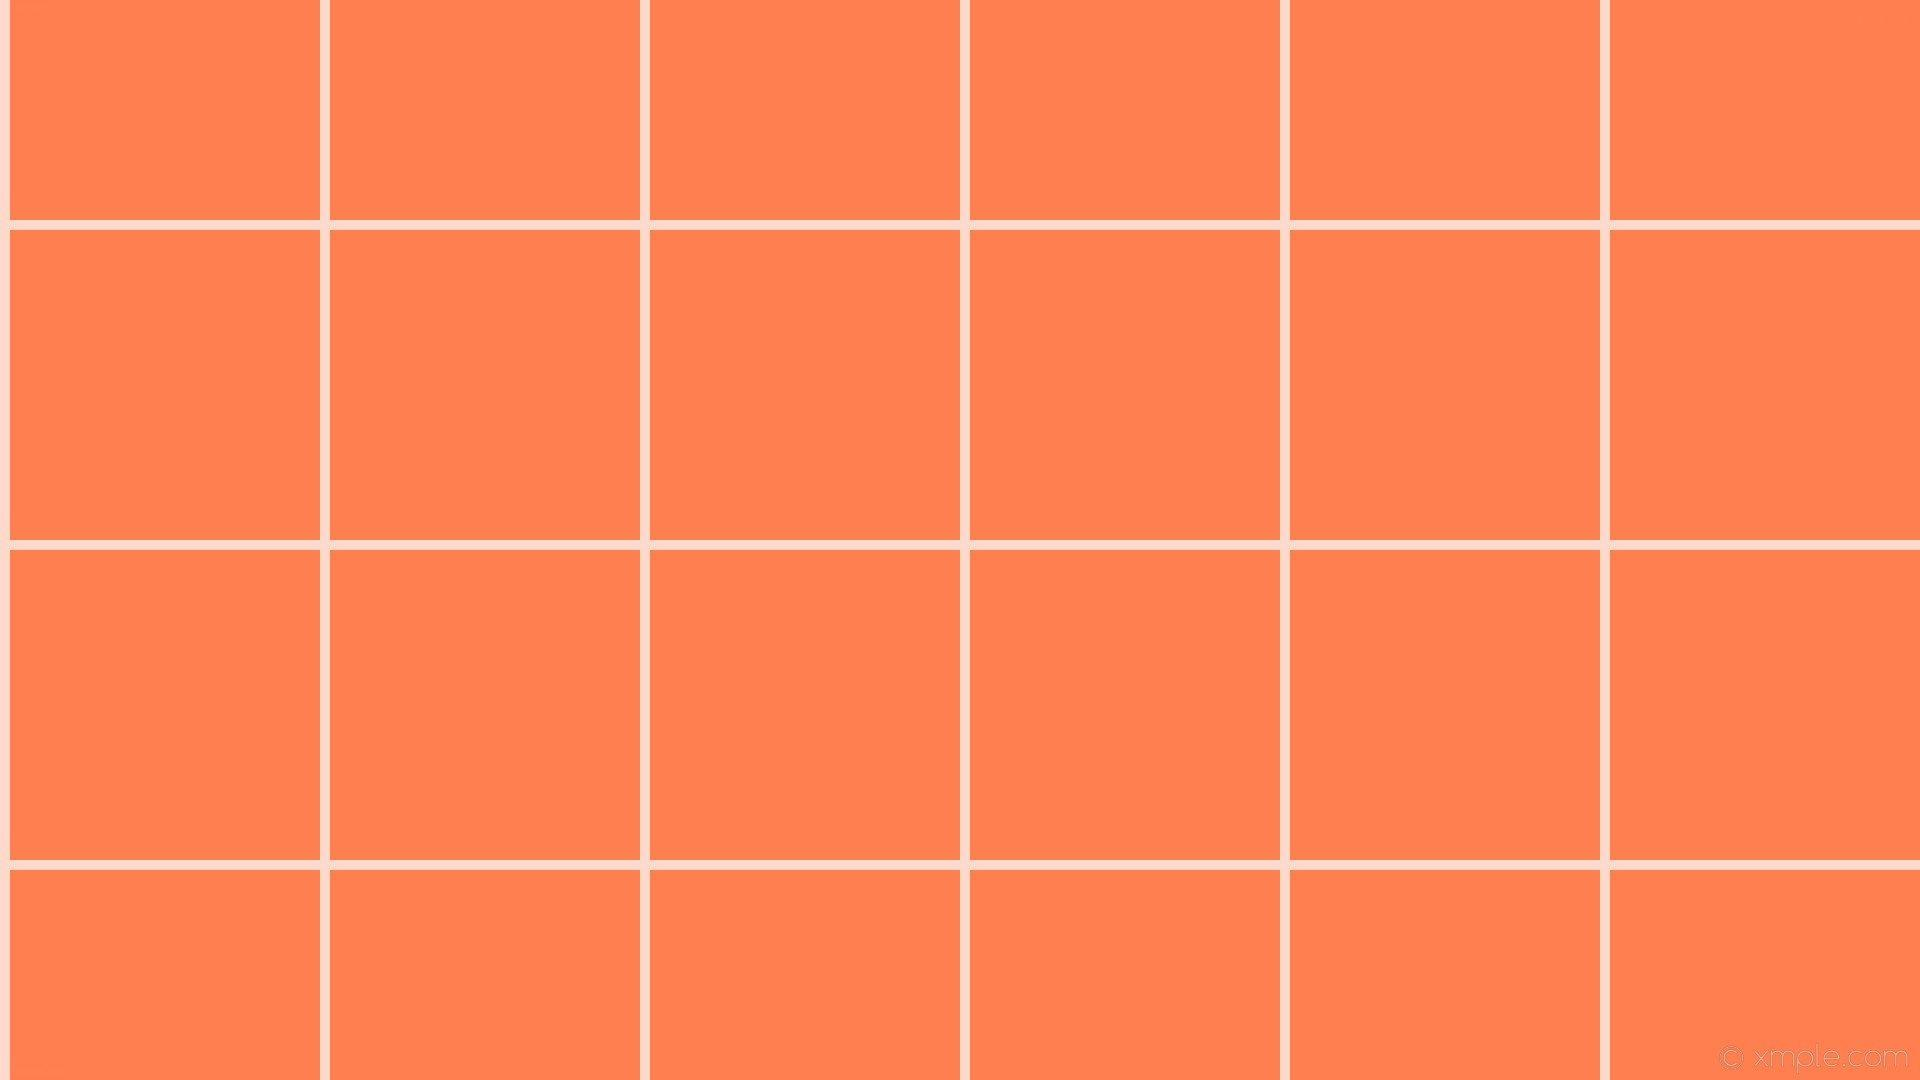 Pastel Orange Aesthetic Wallpapers ✓ The Best HD Wallpapers